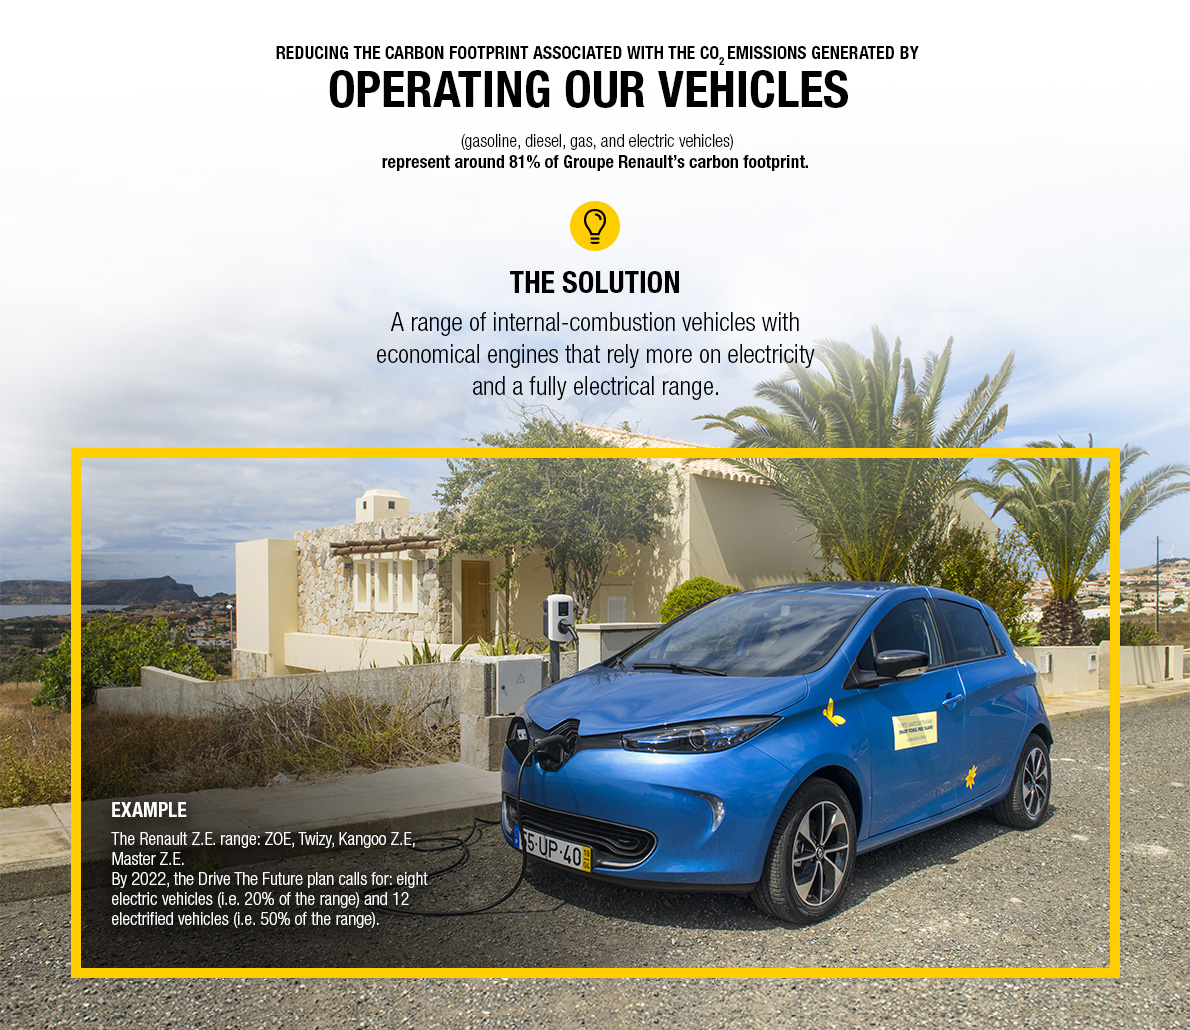 By operating our vehicles